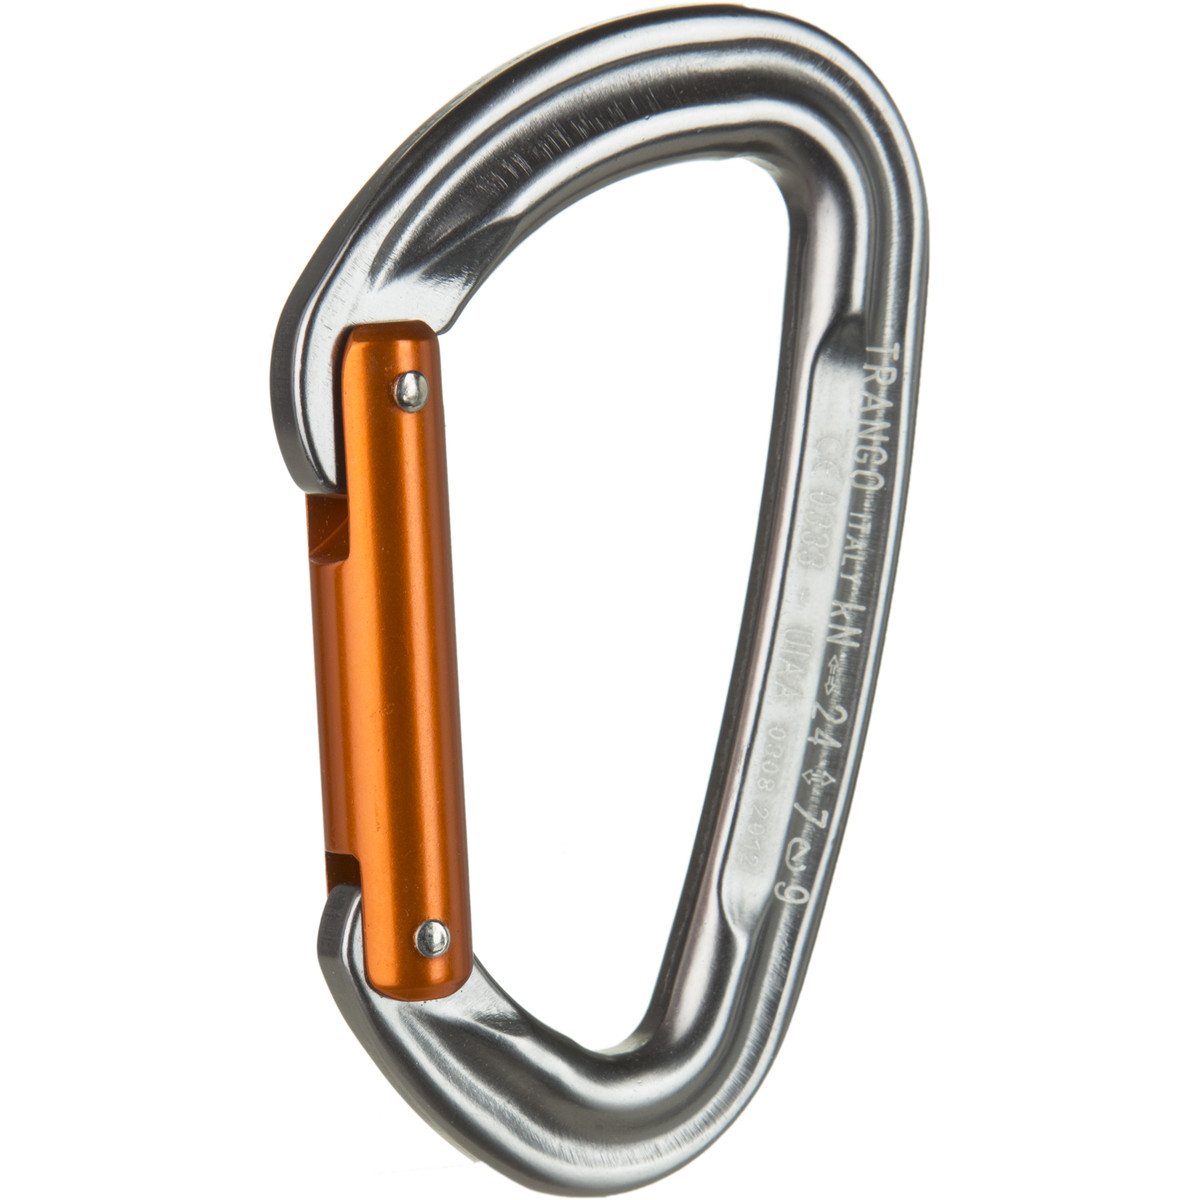 Trango SuperFly Bent Gate